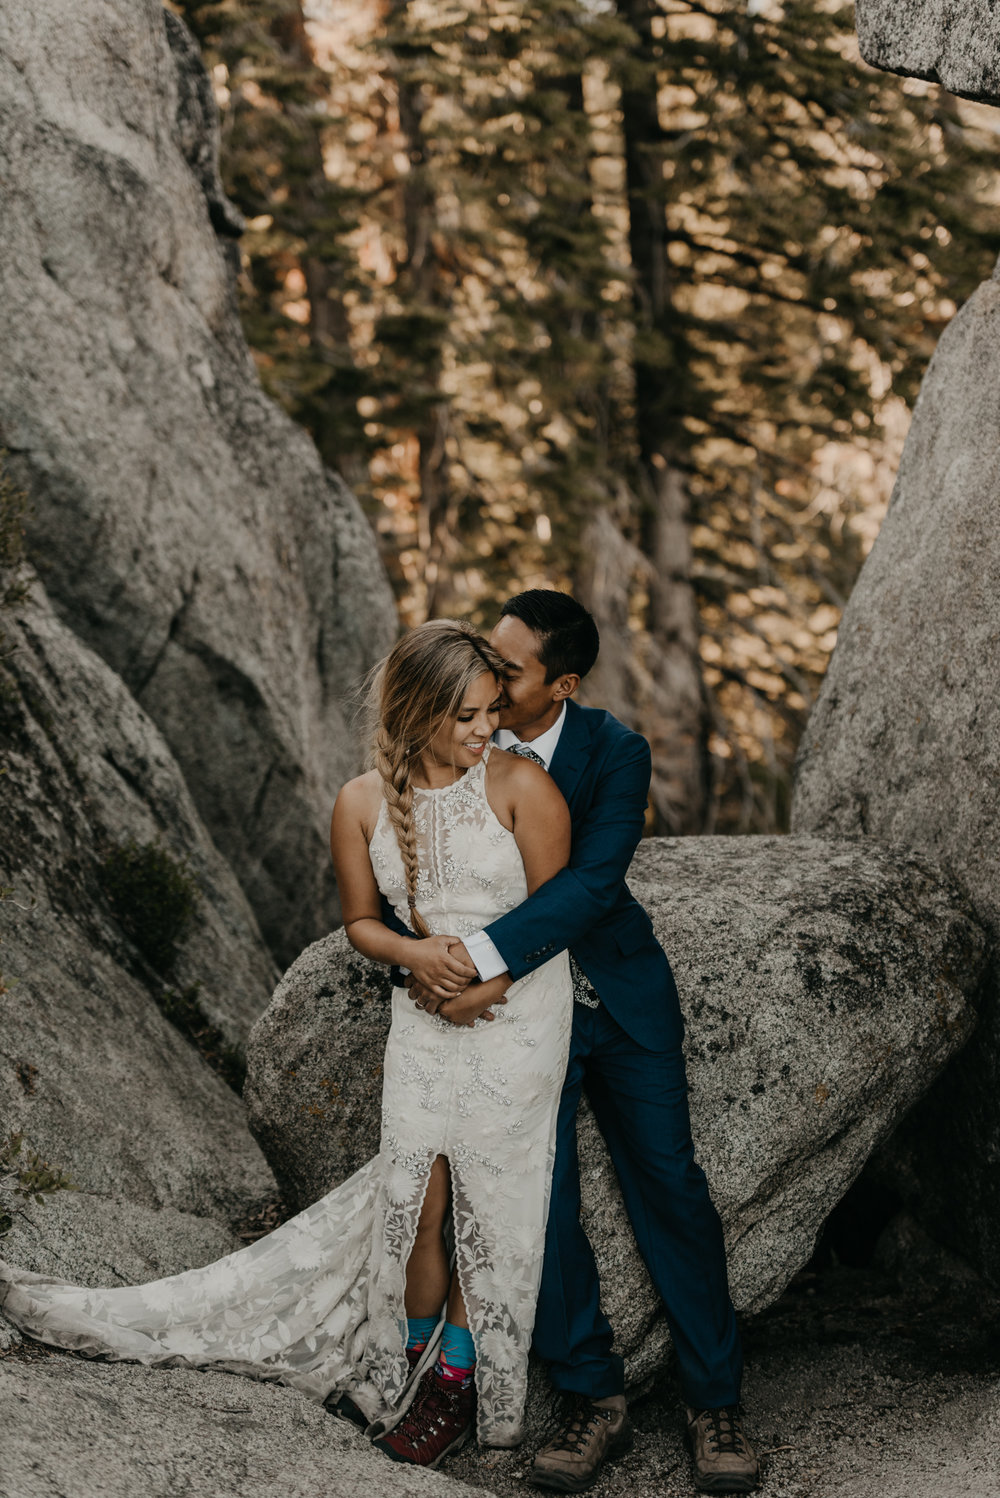 © Isaiah + Taylor Photography - Yosemite Nationanl Park Elopement Photographer - Evergreen Lodge Wedding-034.jpg